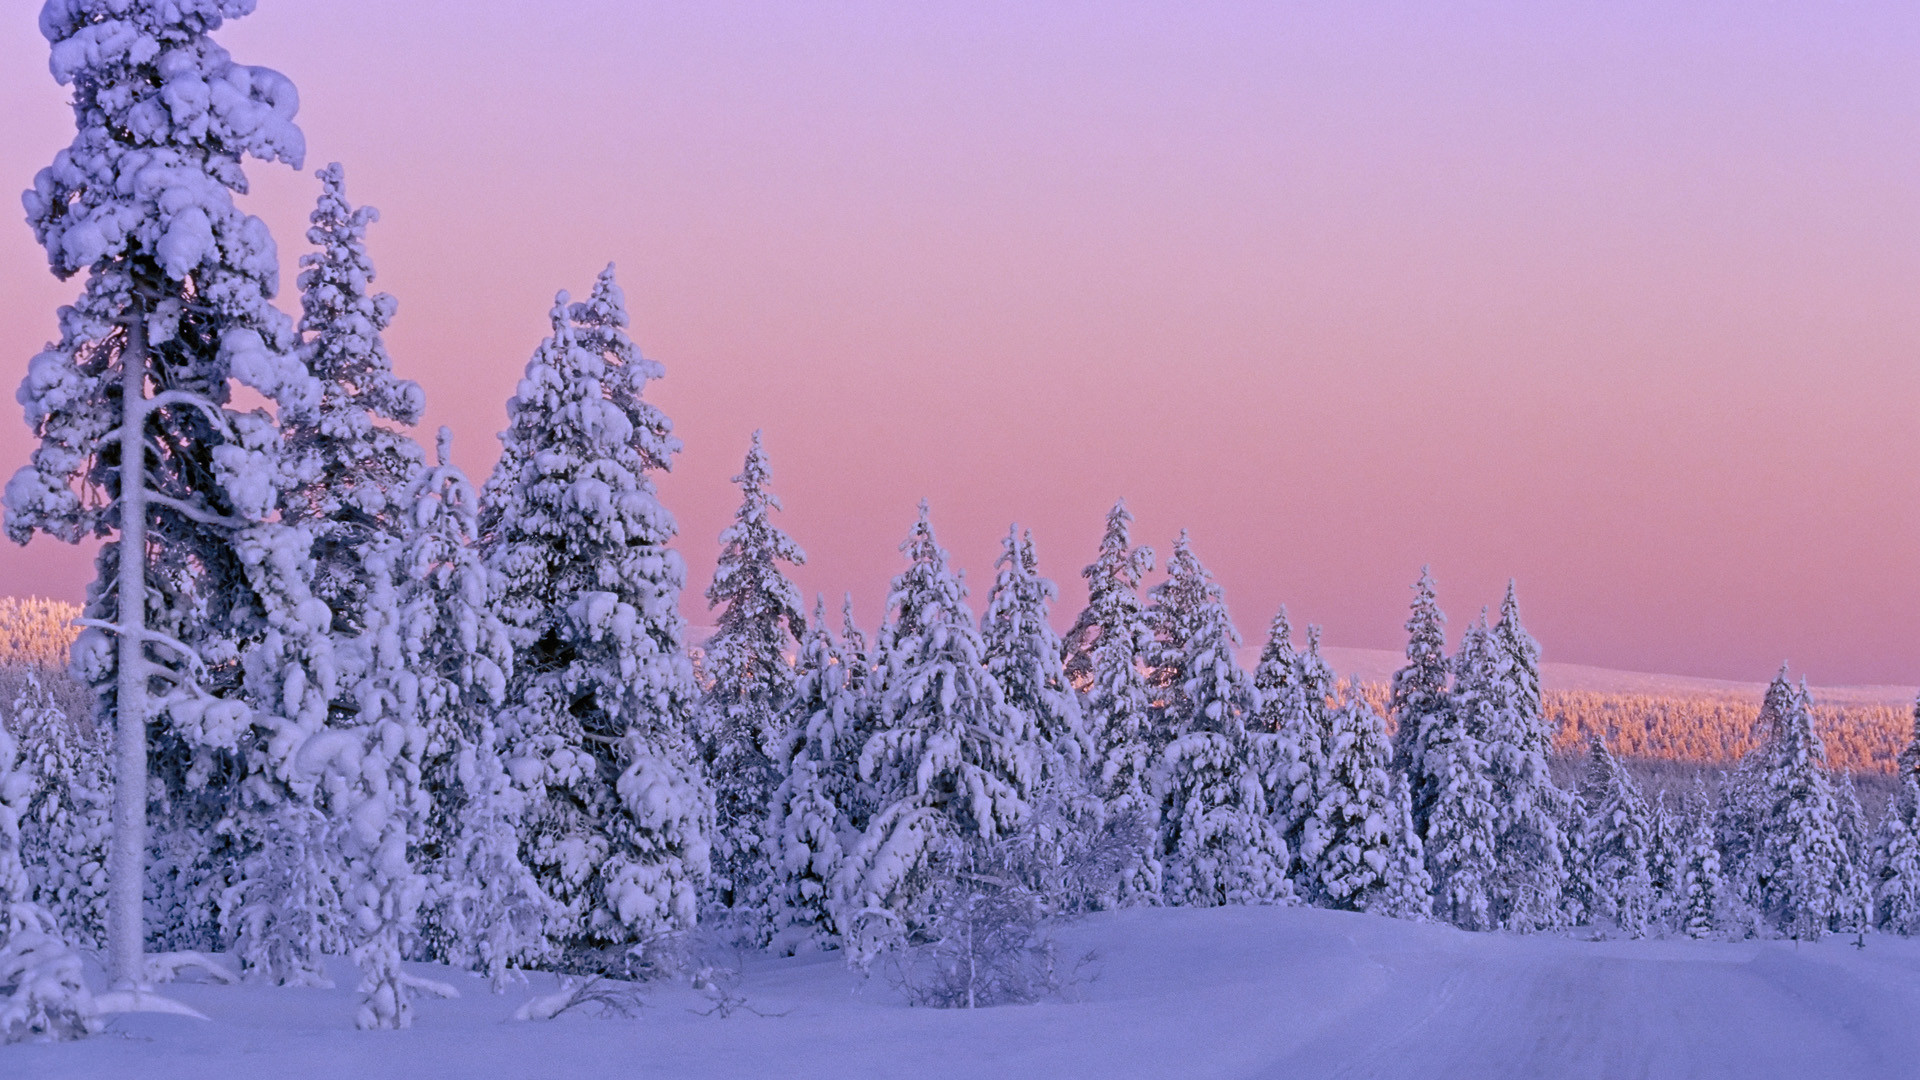 1920x1080 Beautiful Winter Scenes | Winter Snow Sighting Wallpaper Gt Beautiful  Scenery Free ~ Winter .